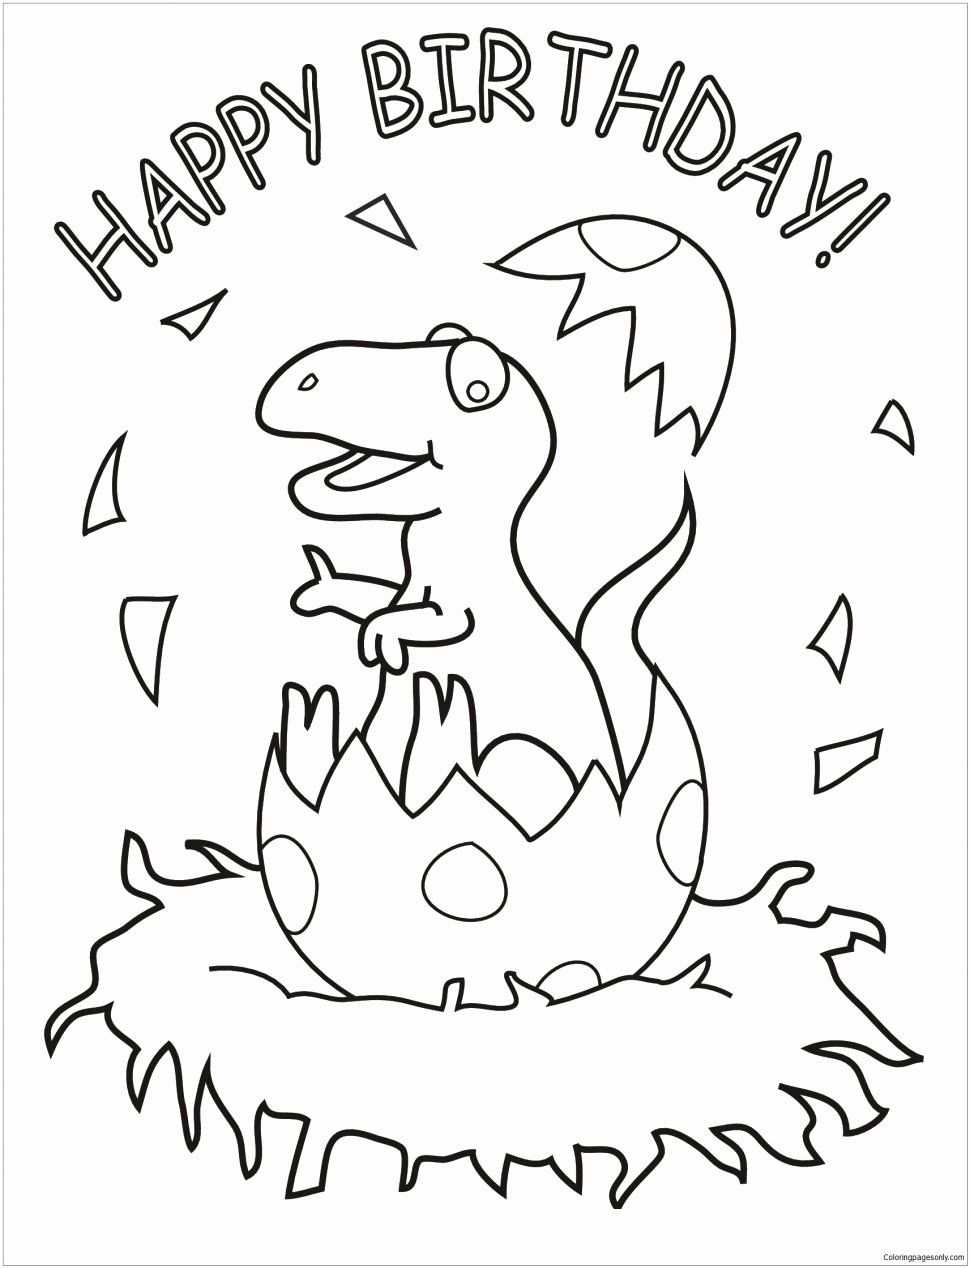 Die Hard Coloring Book Best Of Coloring Books Dinosaur To Color Ninjago Coloring In 2020 Dinosaur Coloring Pages Happy Birthday Coloring Pages Birthday Coloring Pages